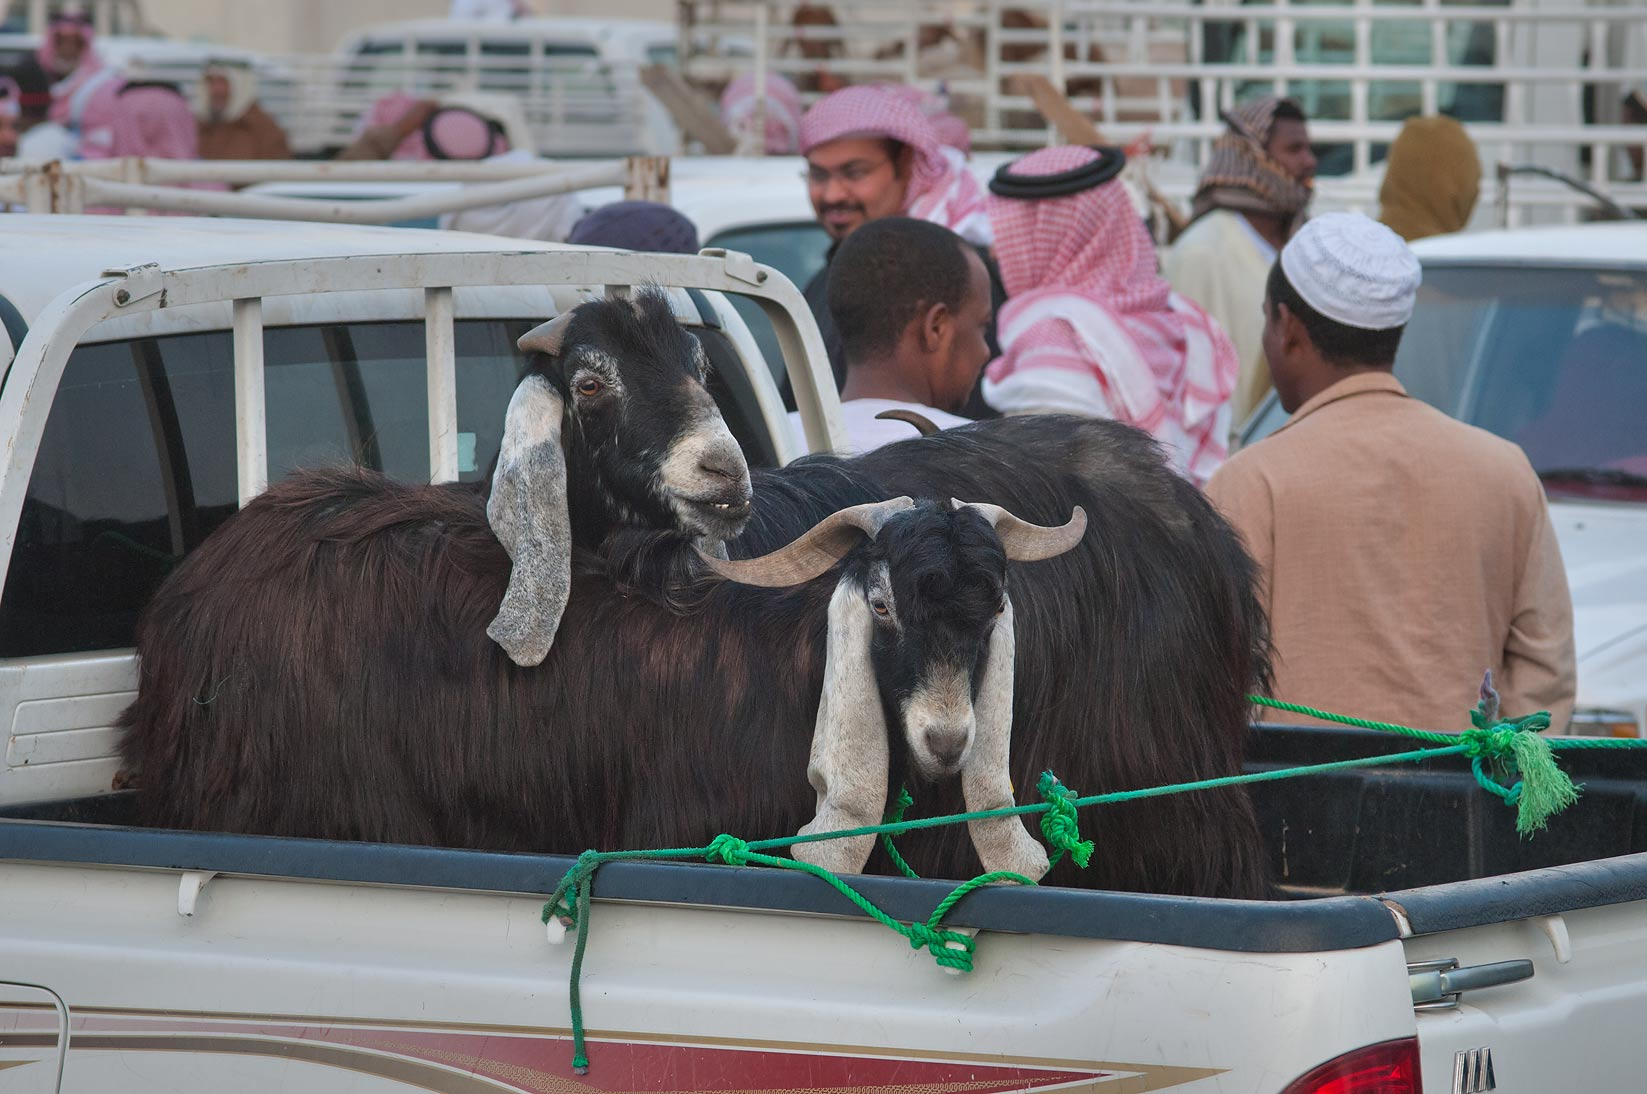 Najdi goats in Sheep Market, Wholesale Markets area. Doha, Qatar